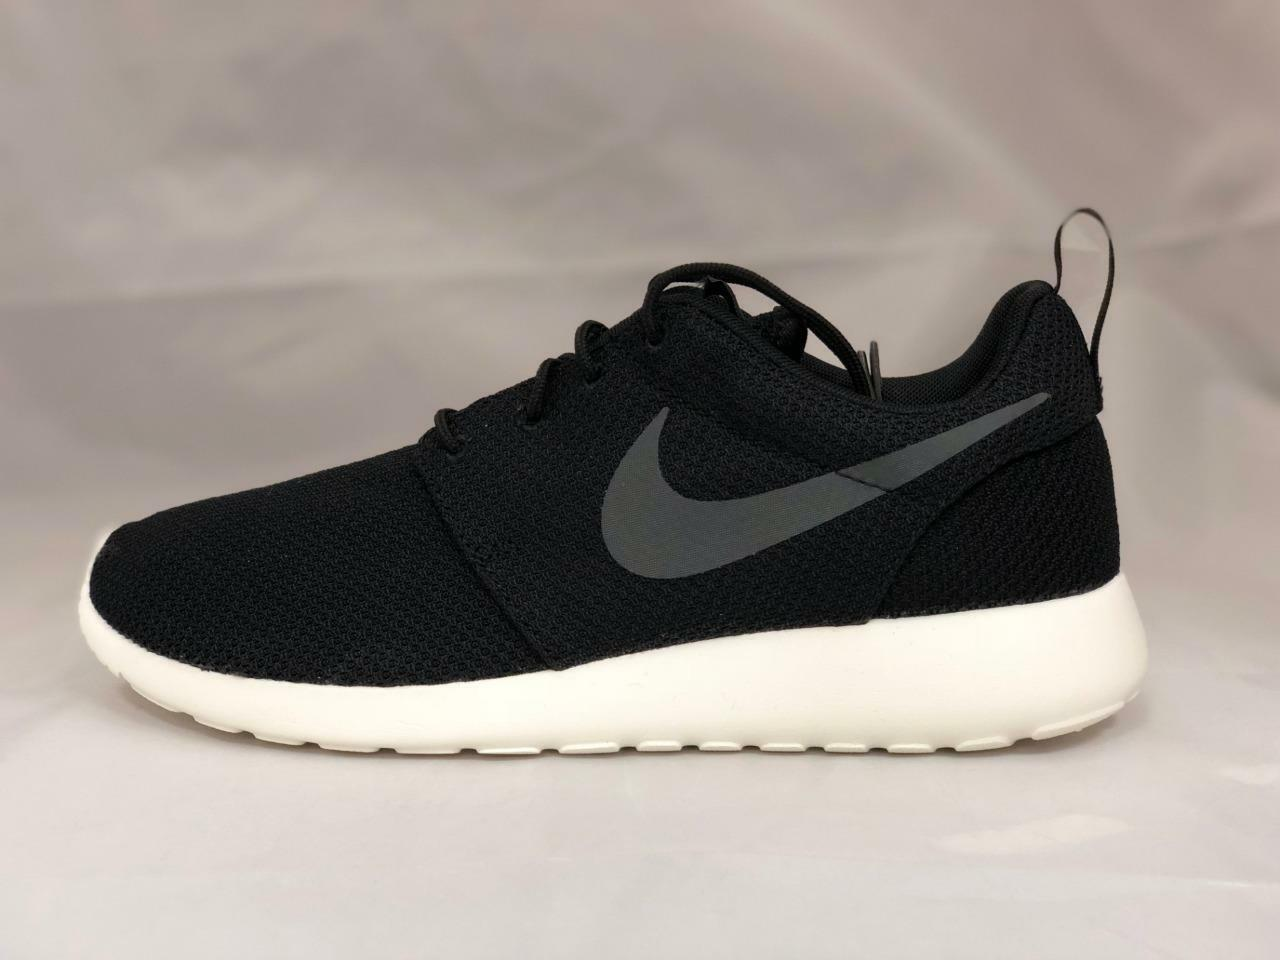 NEW MEN'S NIKE ROSHE ONE SNEAKERS 511881-010 BLACK ANTHRACITE-SAIL